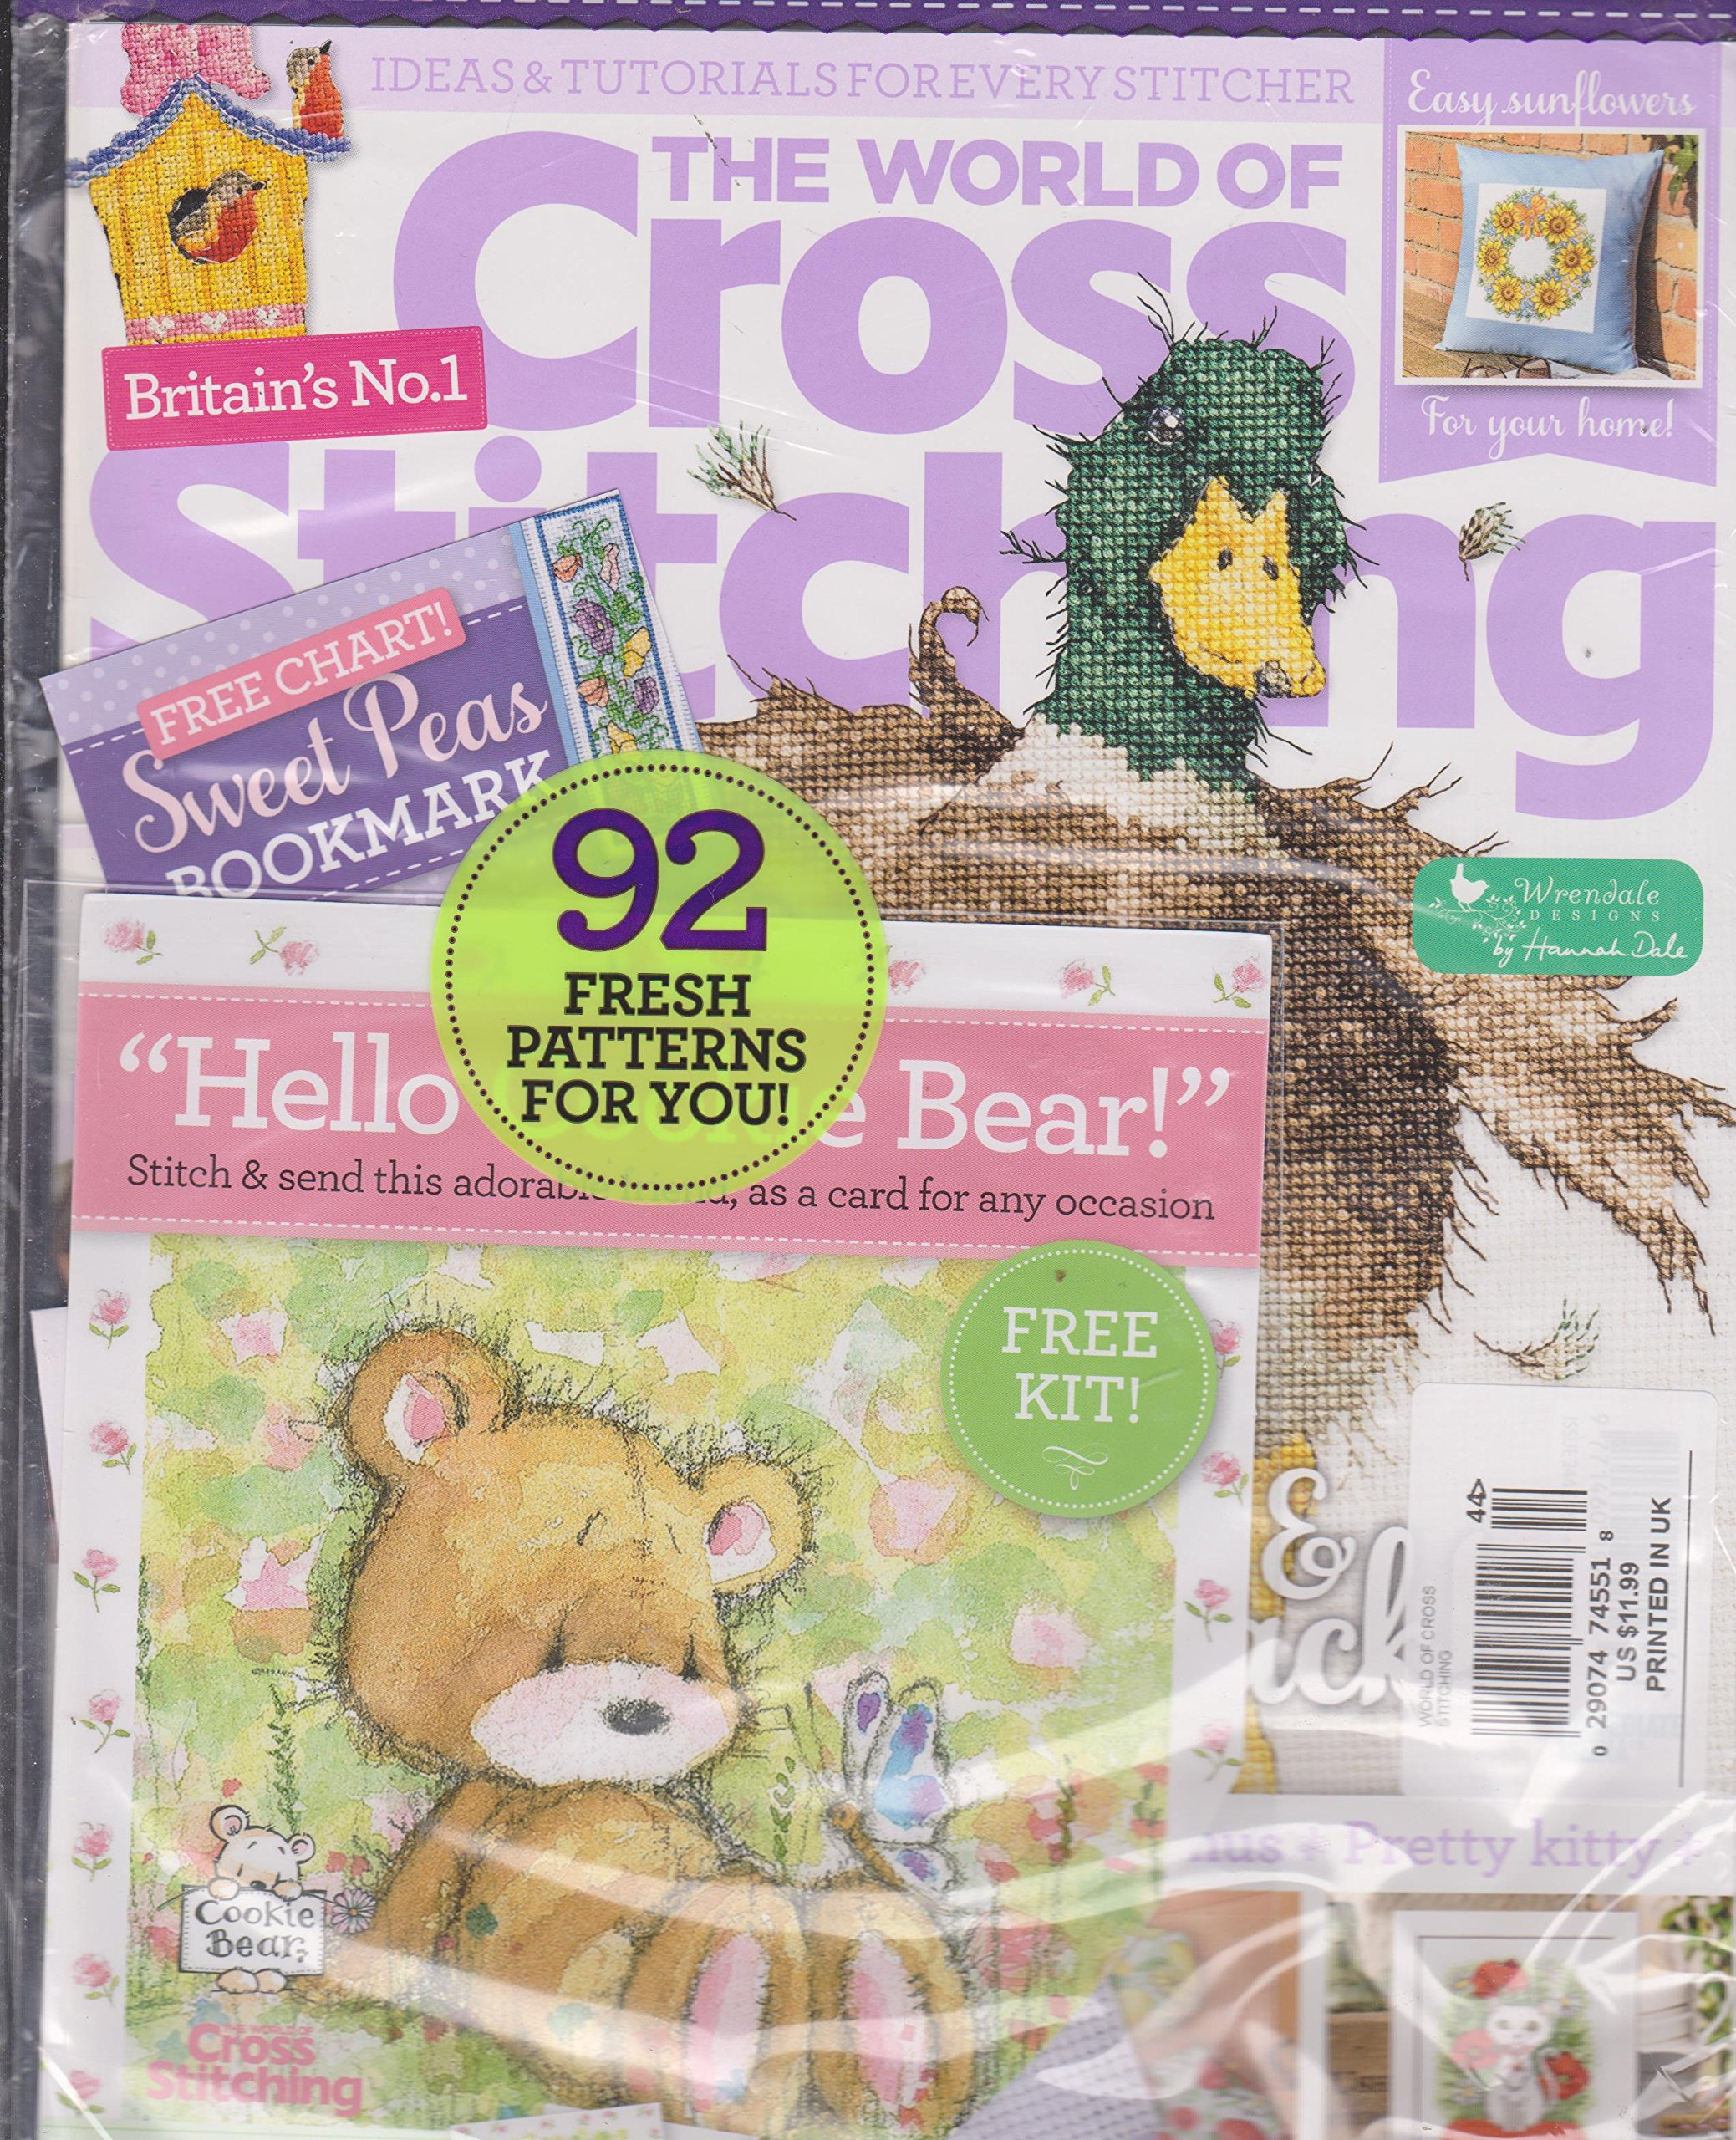 Download The World of Cross Stitching Magazine Issue 244 PDF ePub book